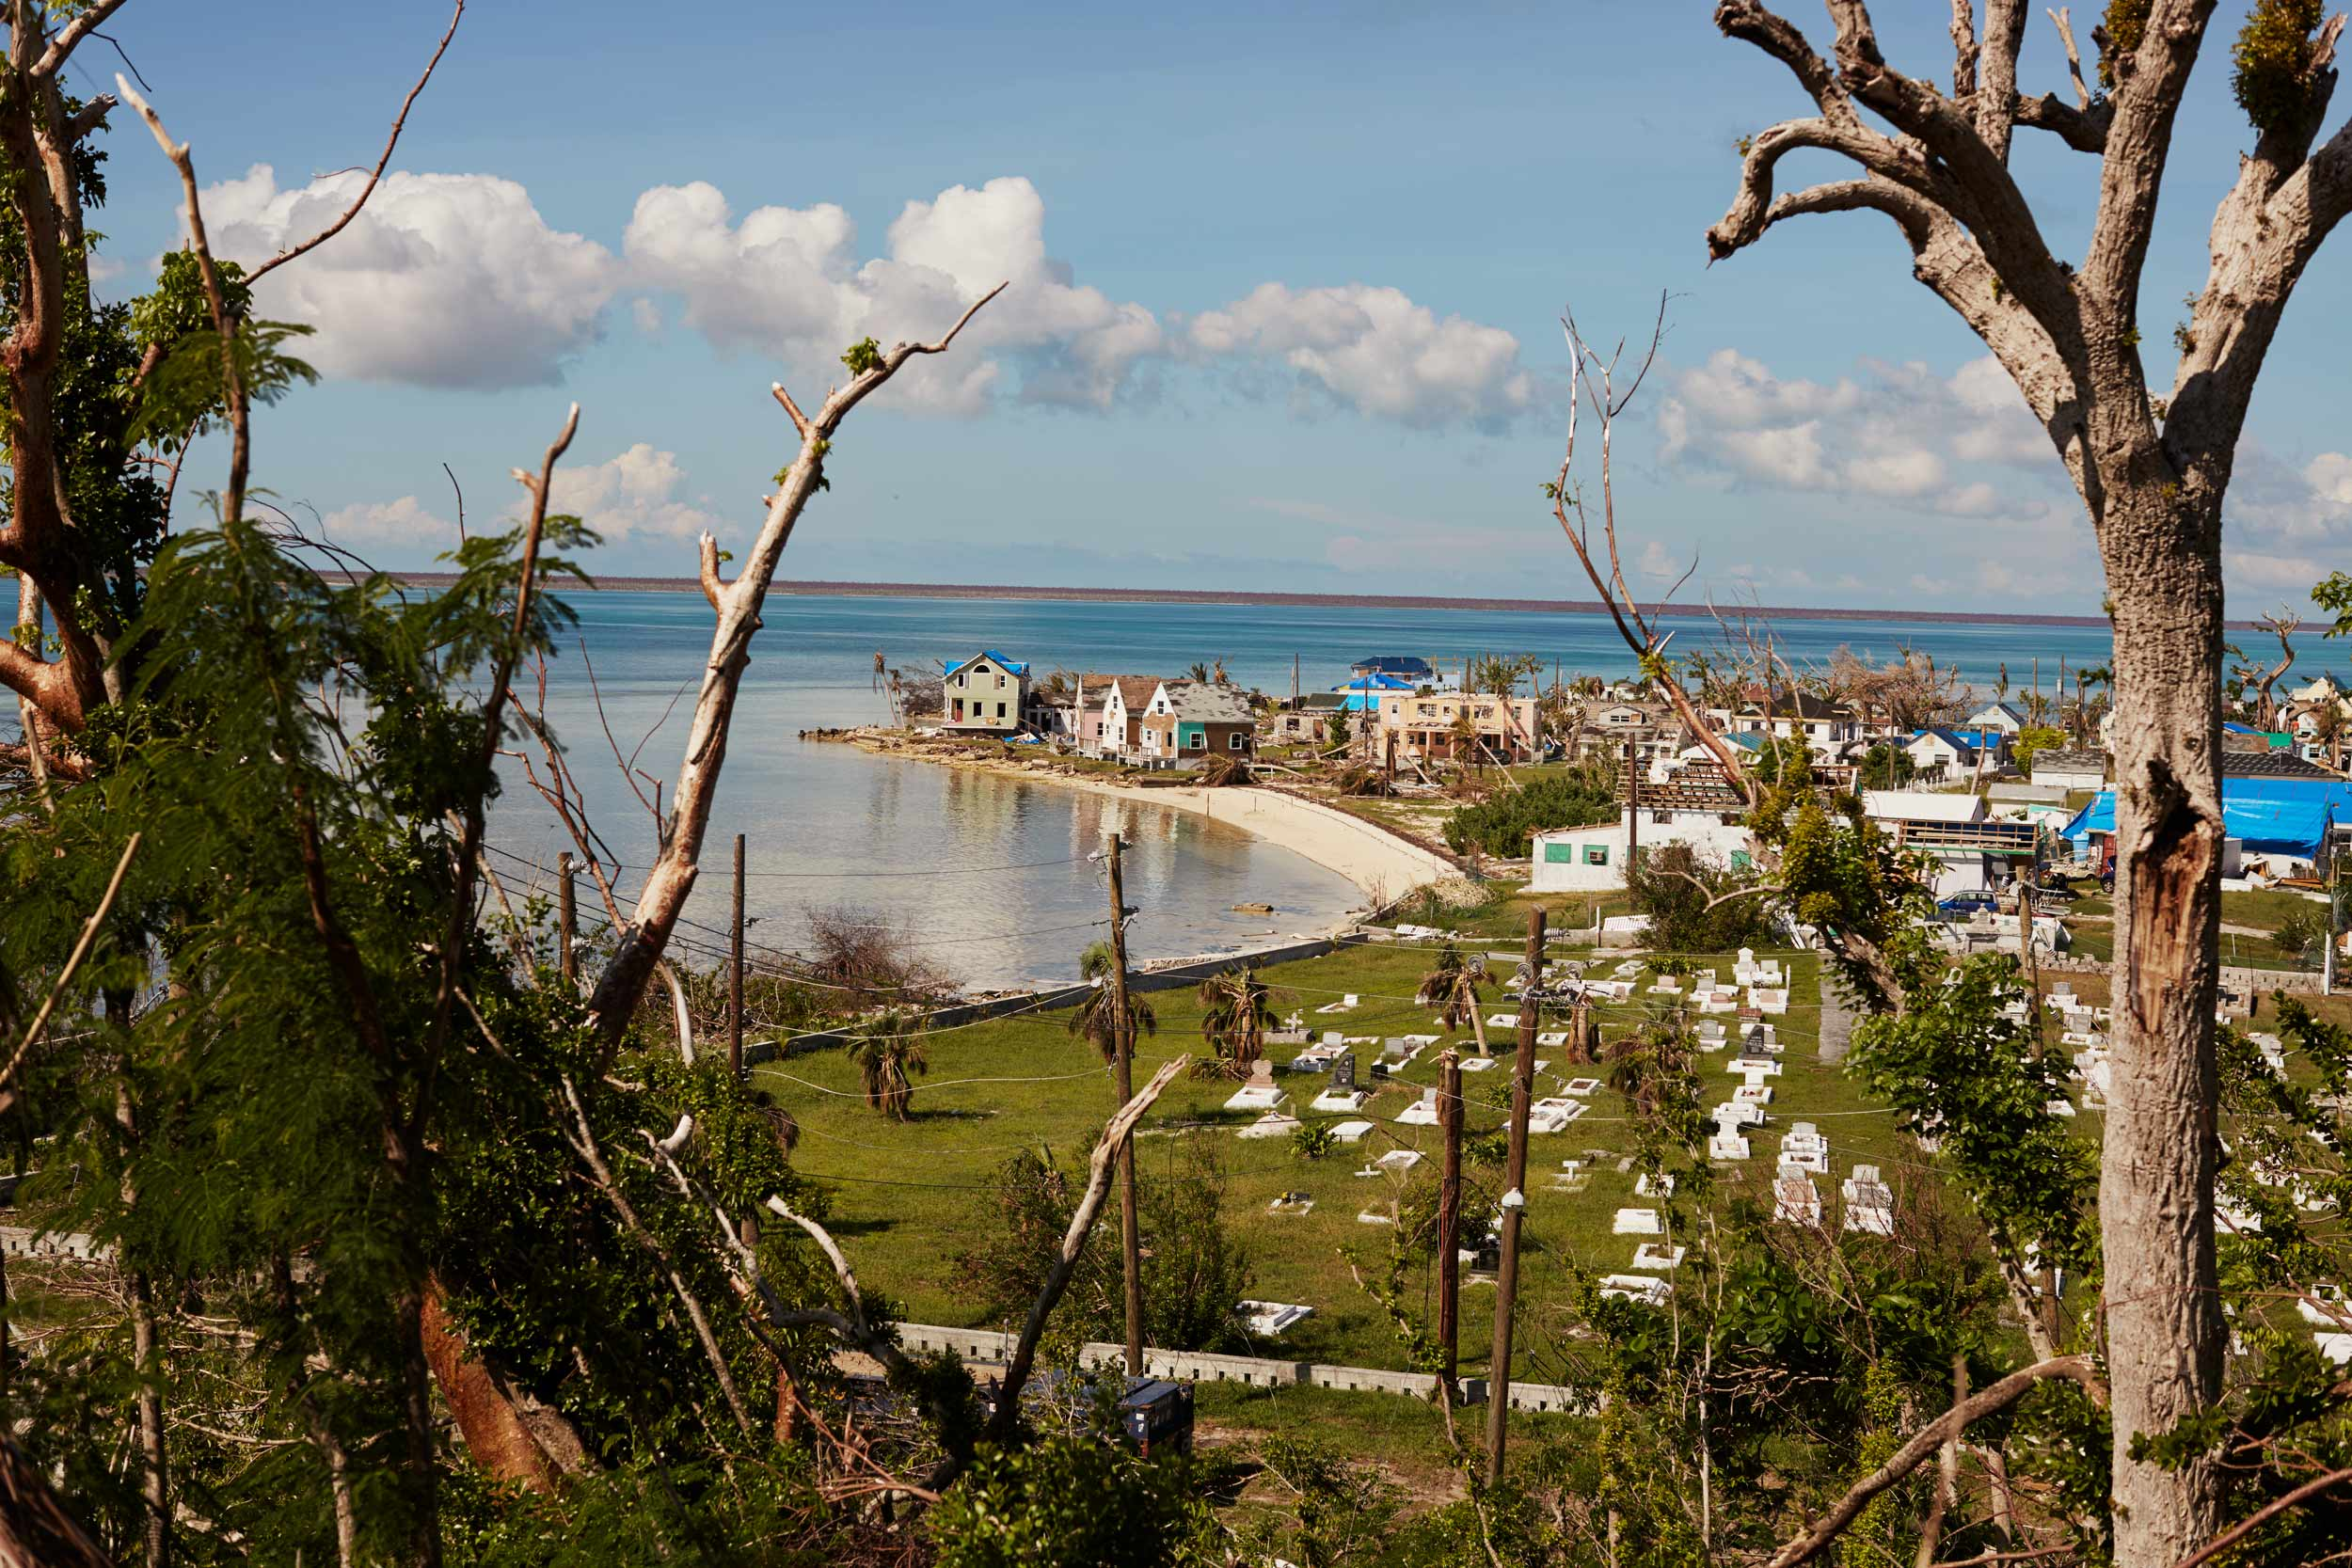 31-H911-BAHAMAS-OVERLOOK